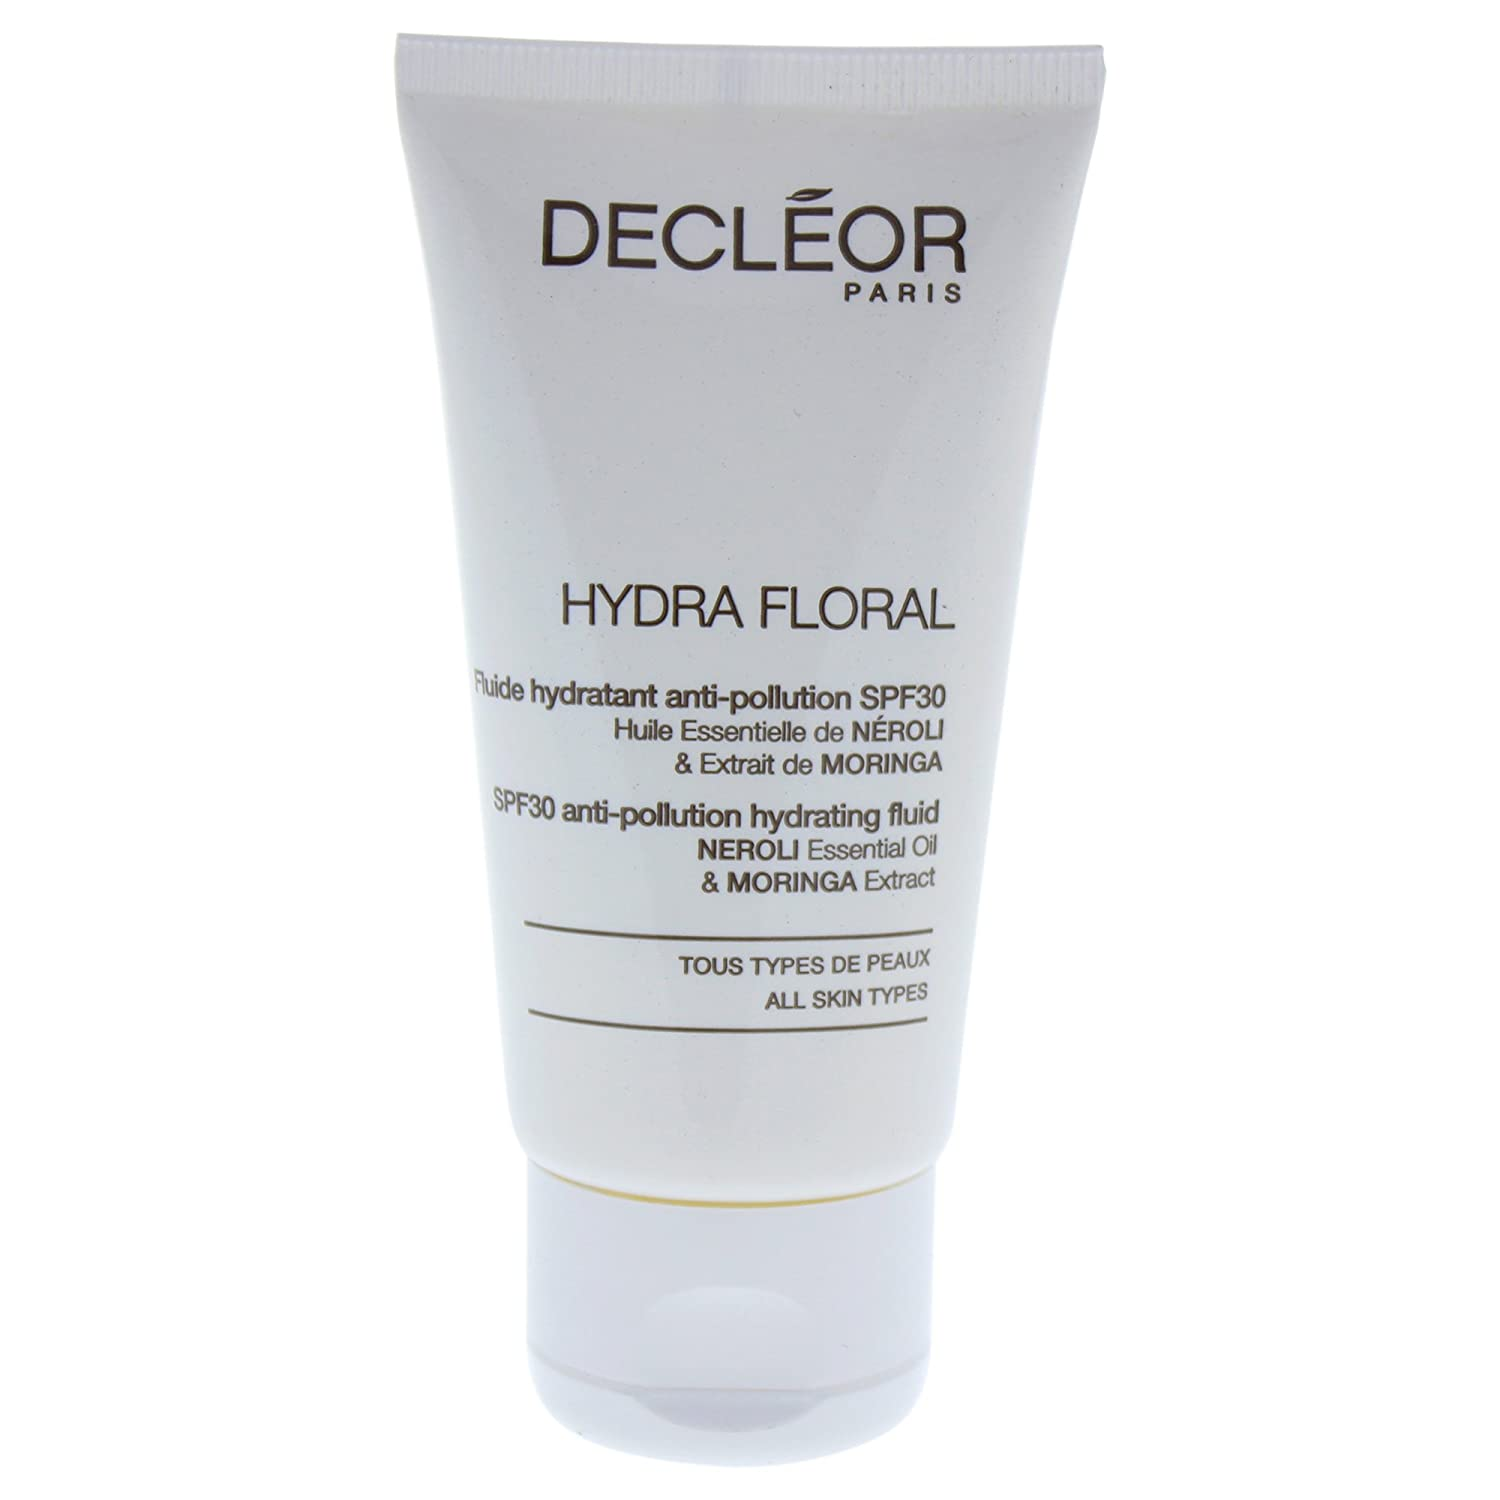 Decleor Hydra Floral Anti-Pollution Hydrating Rich Cream Cream For Unisex  1.7 oz EOS Kleenex 2016 Limited Edition Spring Trio Pack 1 ea (Pack of 3)